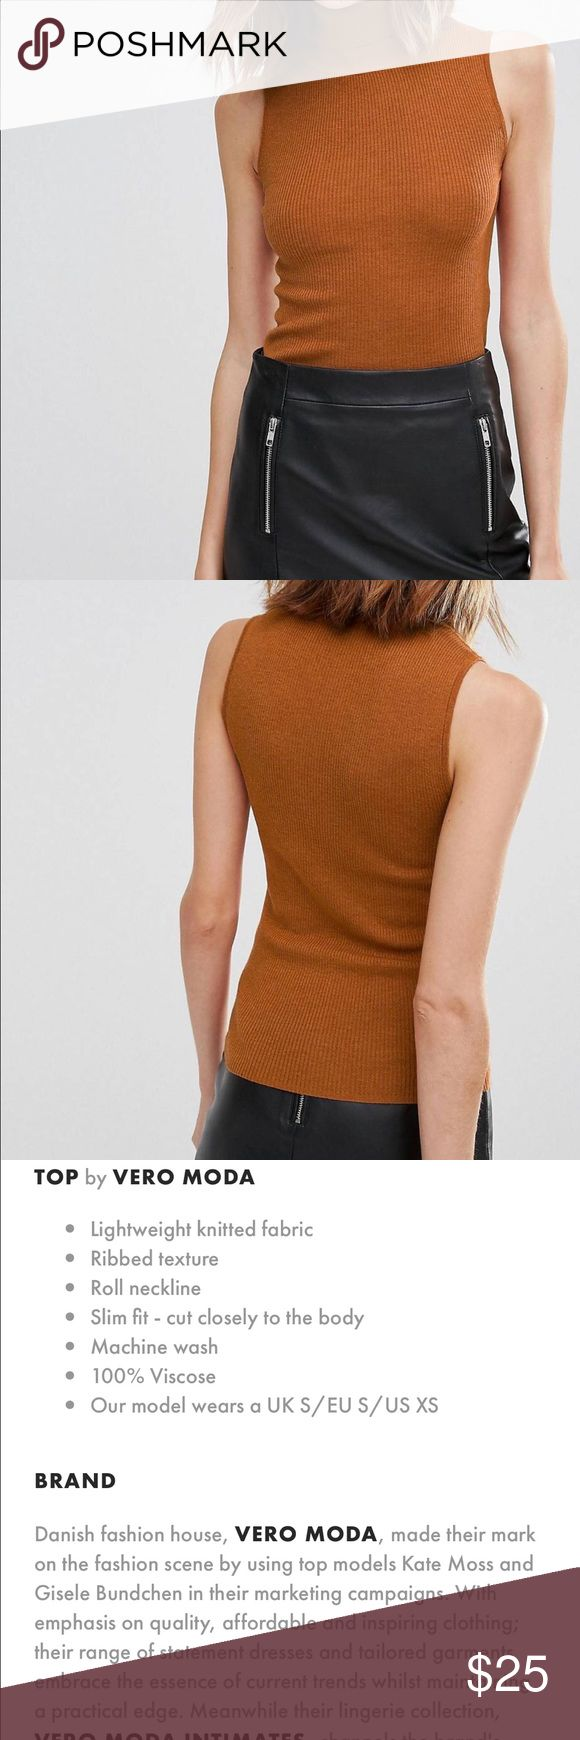 Asos roll neck tank top Worn once in perfect condition. ASOS Tops Tank Tops